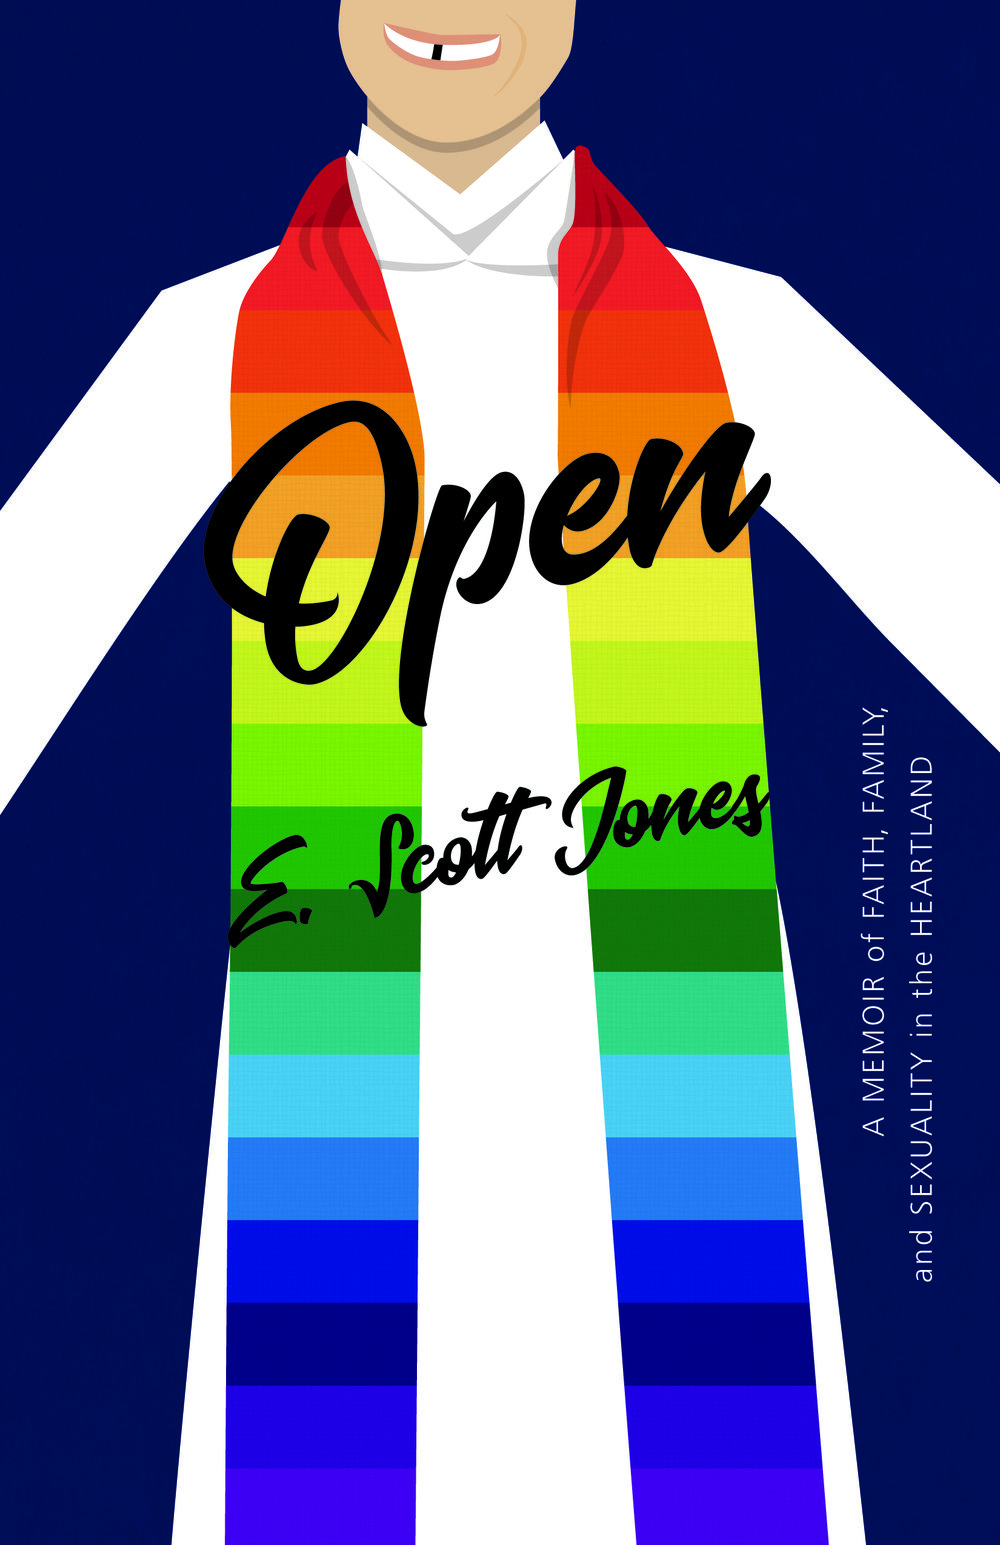 Cover--Open by Scott E. Jones.jpg